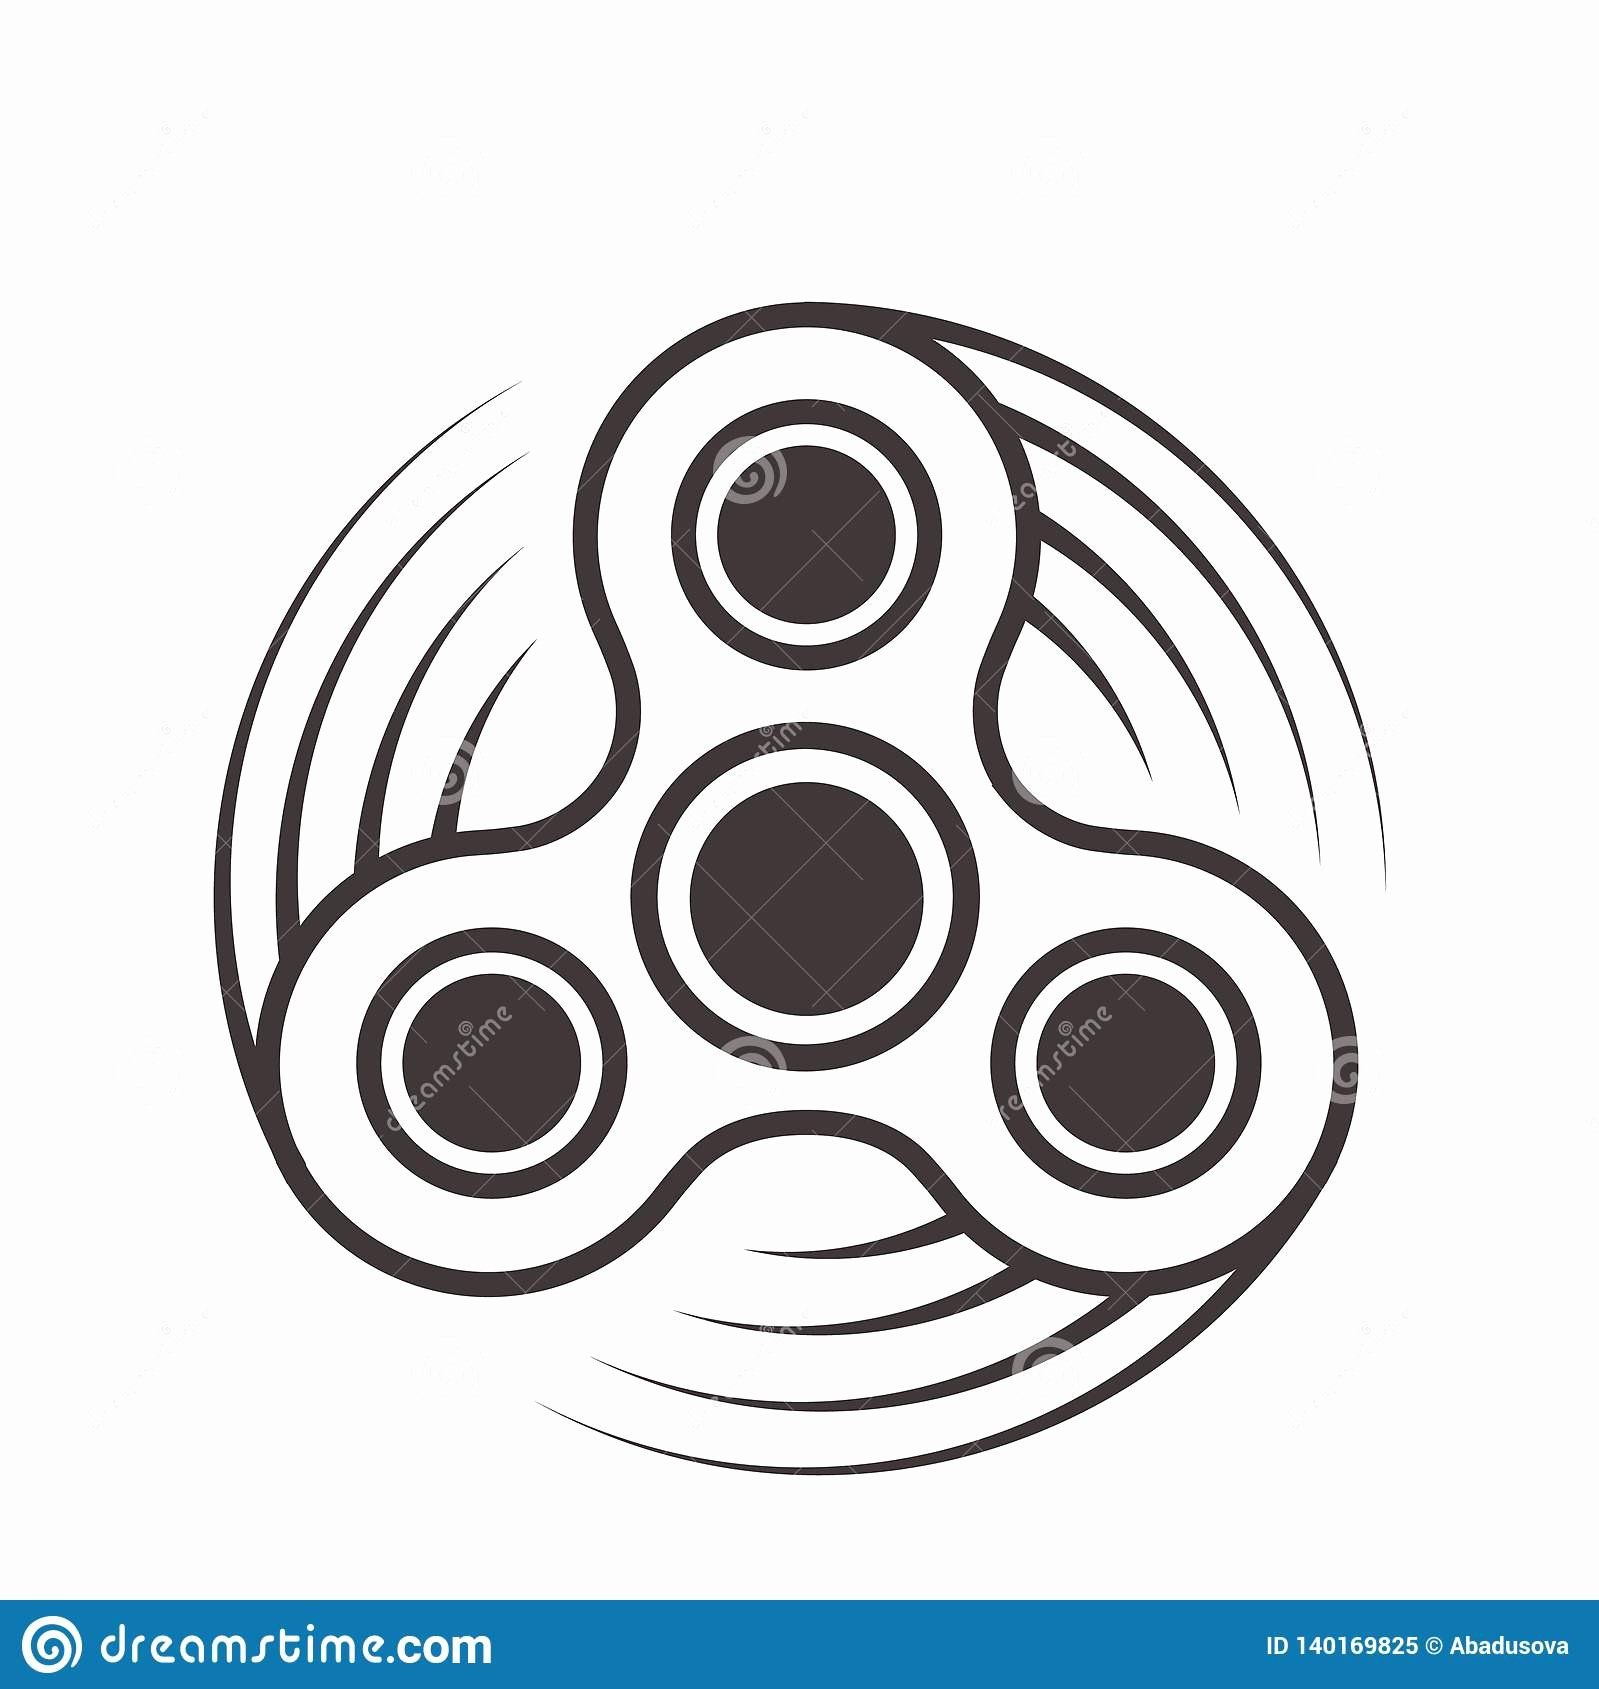 Fidget Spinner Coloring Page Elegant Fid Spinner Icon Toy For Stress Relief Improvement Attention Span Fi Dog Coloring Page Whale Coloring Pages Coloring Pages